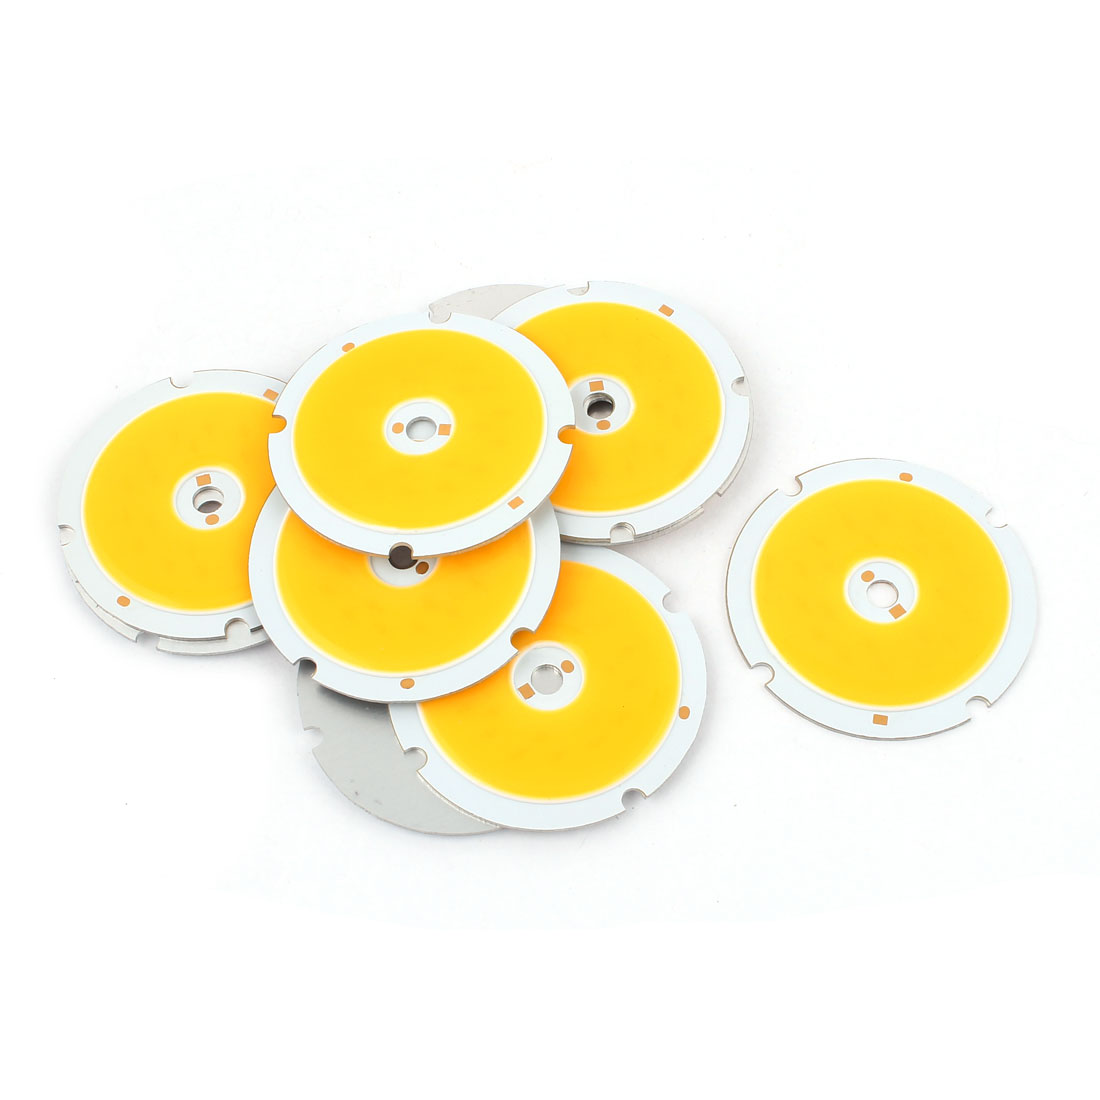 7W DC21-24V 300mA 80-90LM/W Warm White LED Light COB Lamp Bead Chip 10 Pcs